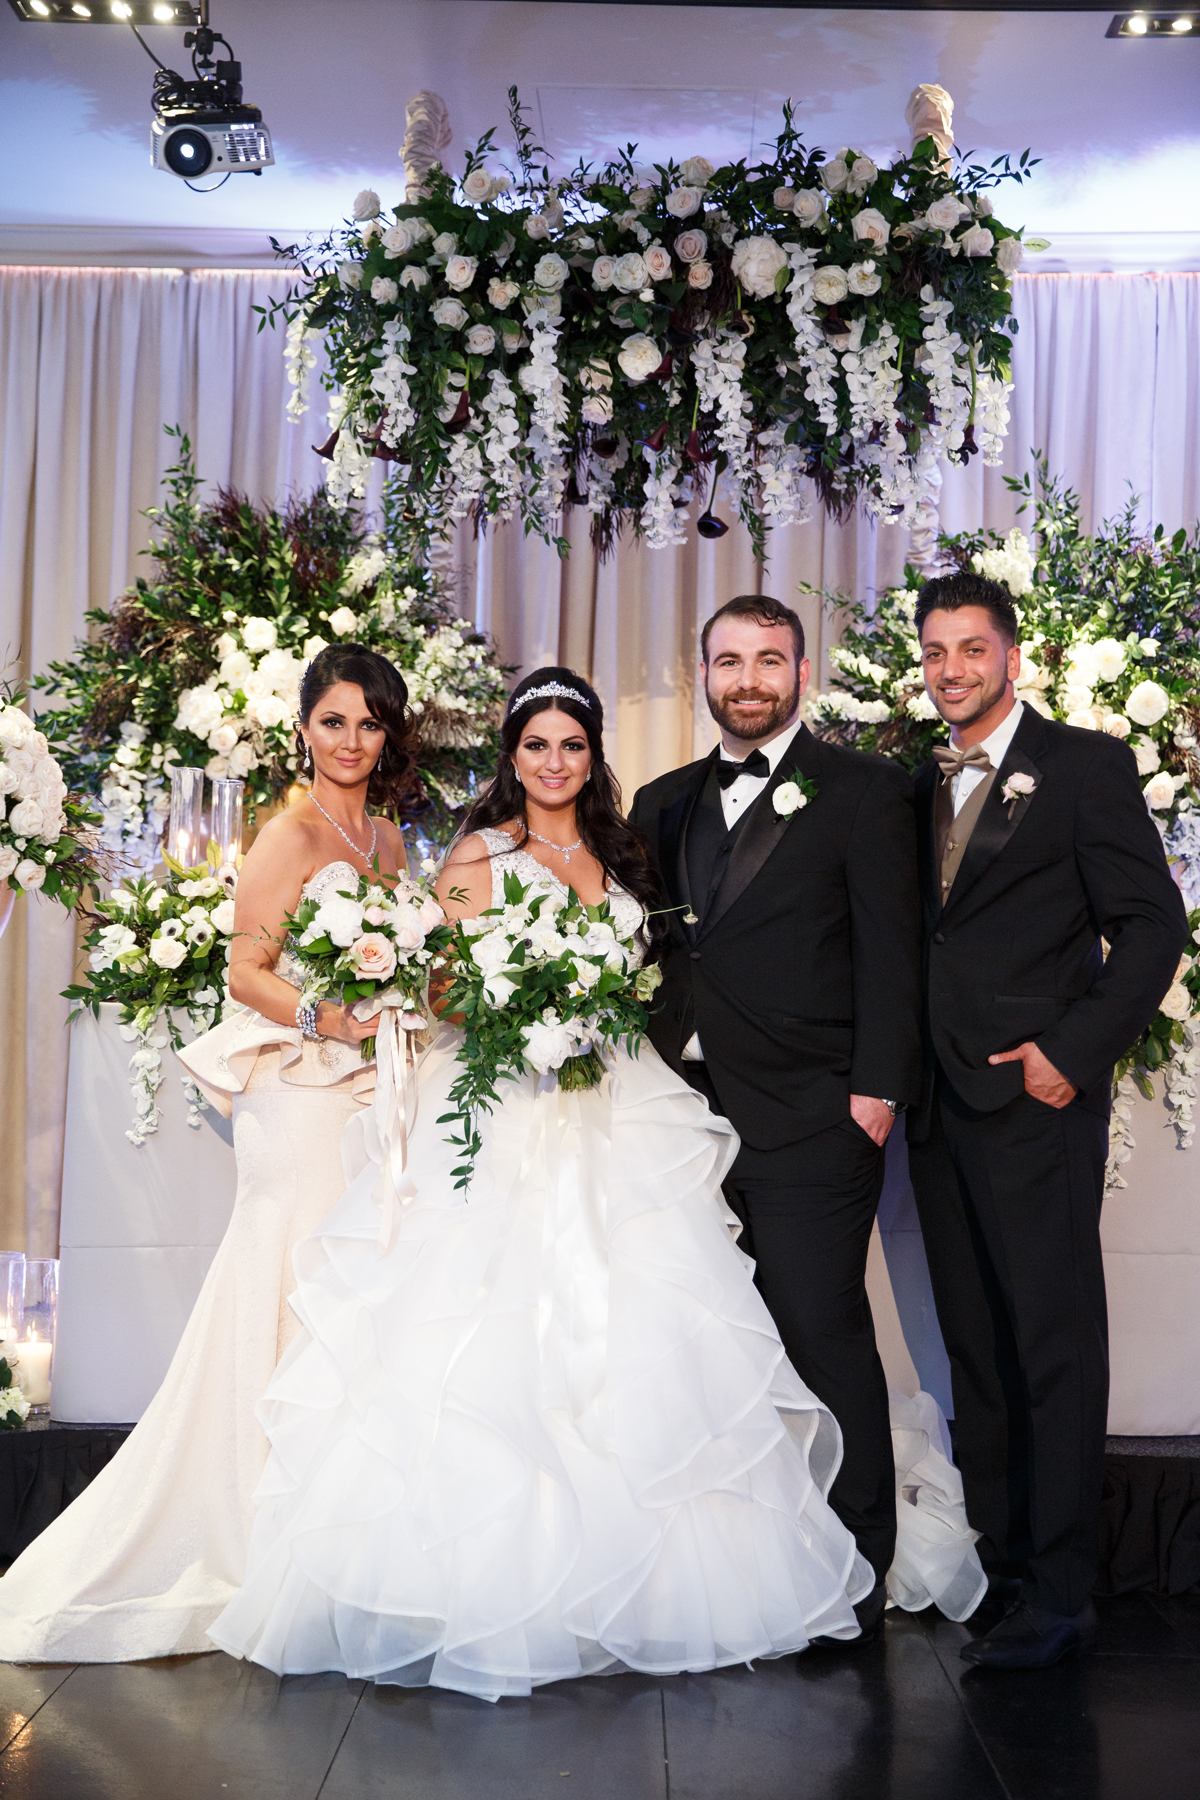 Elegant Pasadena Wedding to Make You Swoon bride and groom with made of honor and best man.jpg